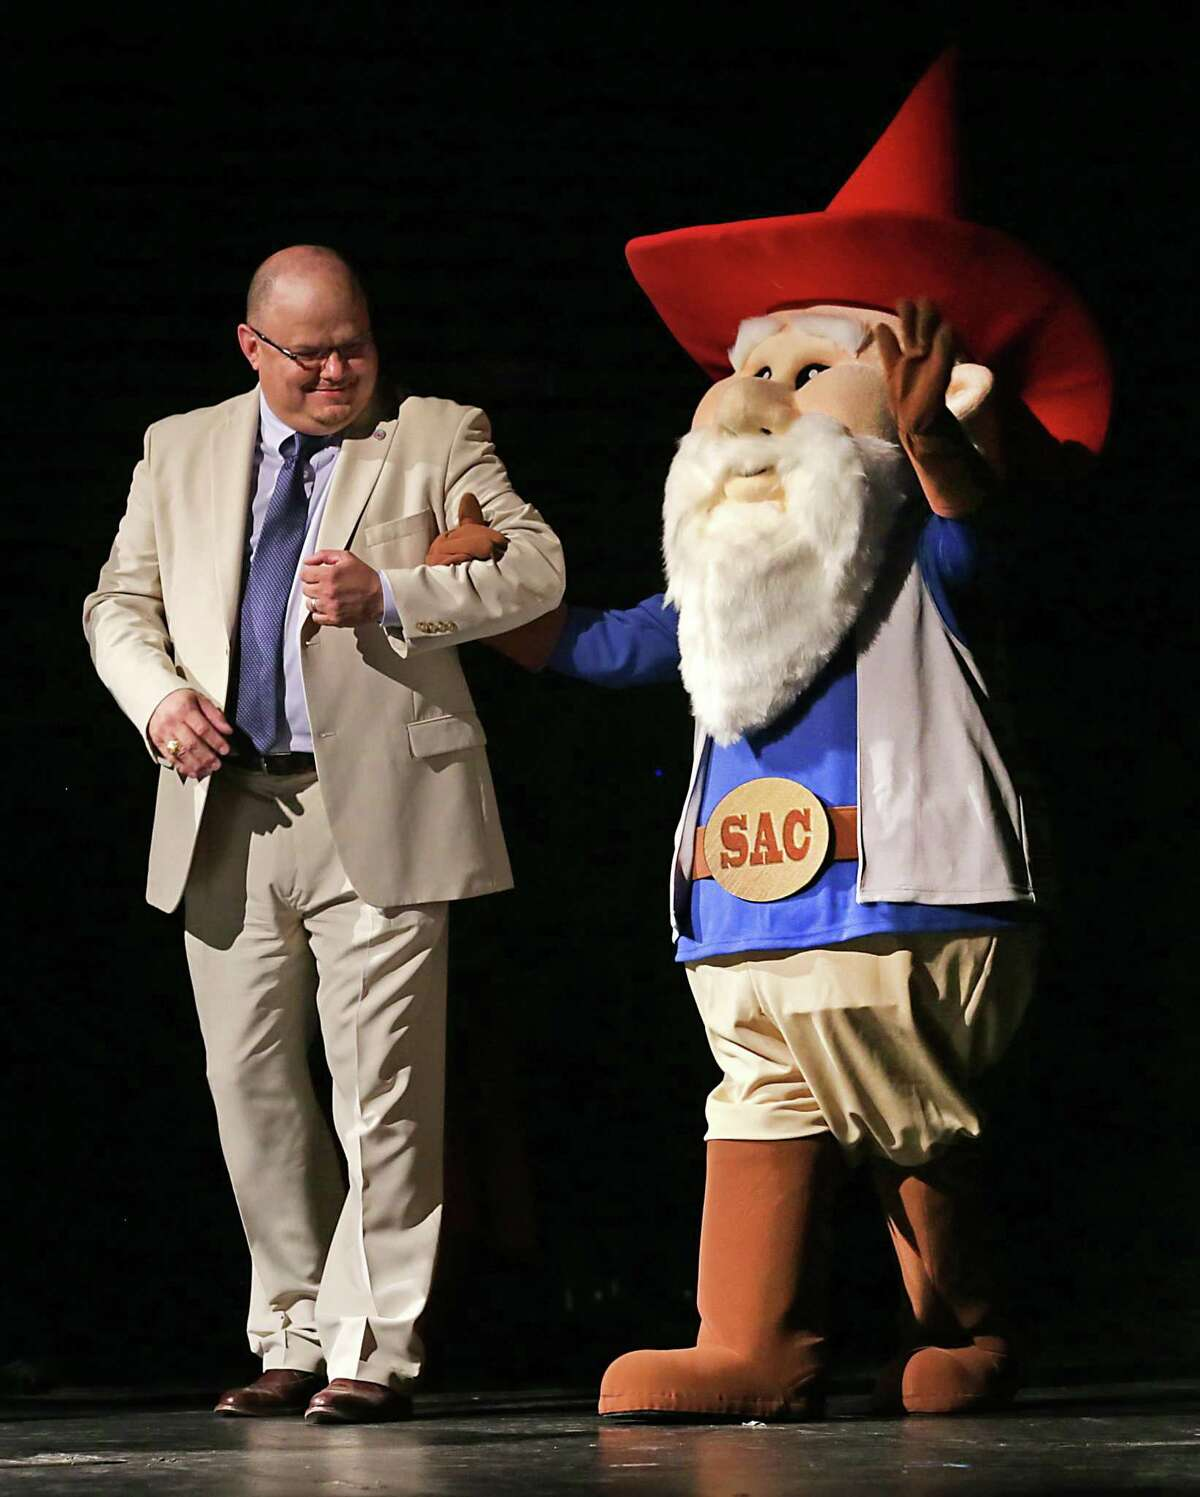 With his masked buddy, San Antonio College's Gnome Ranger ponders his exit.